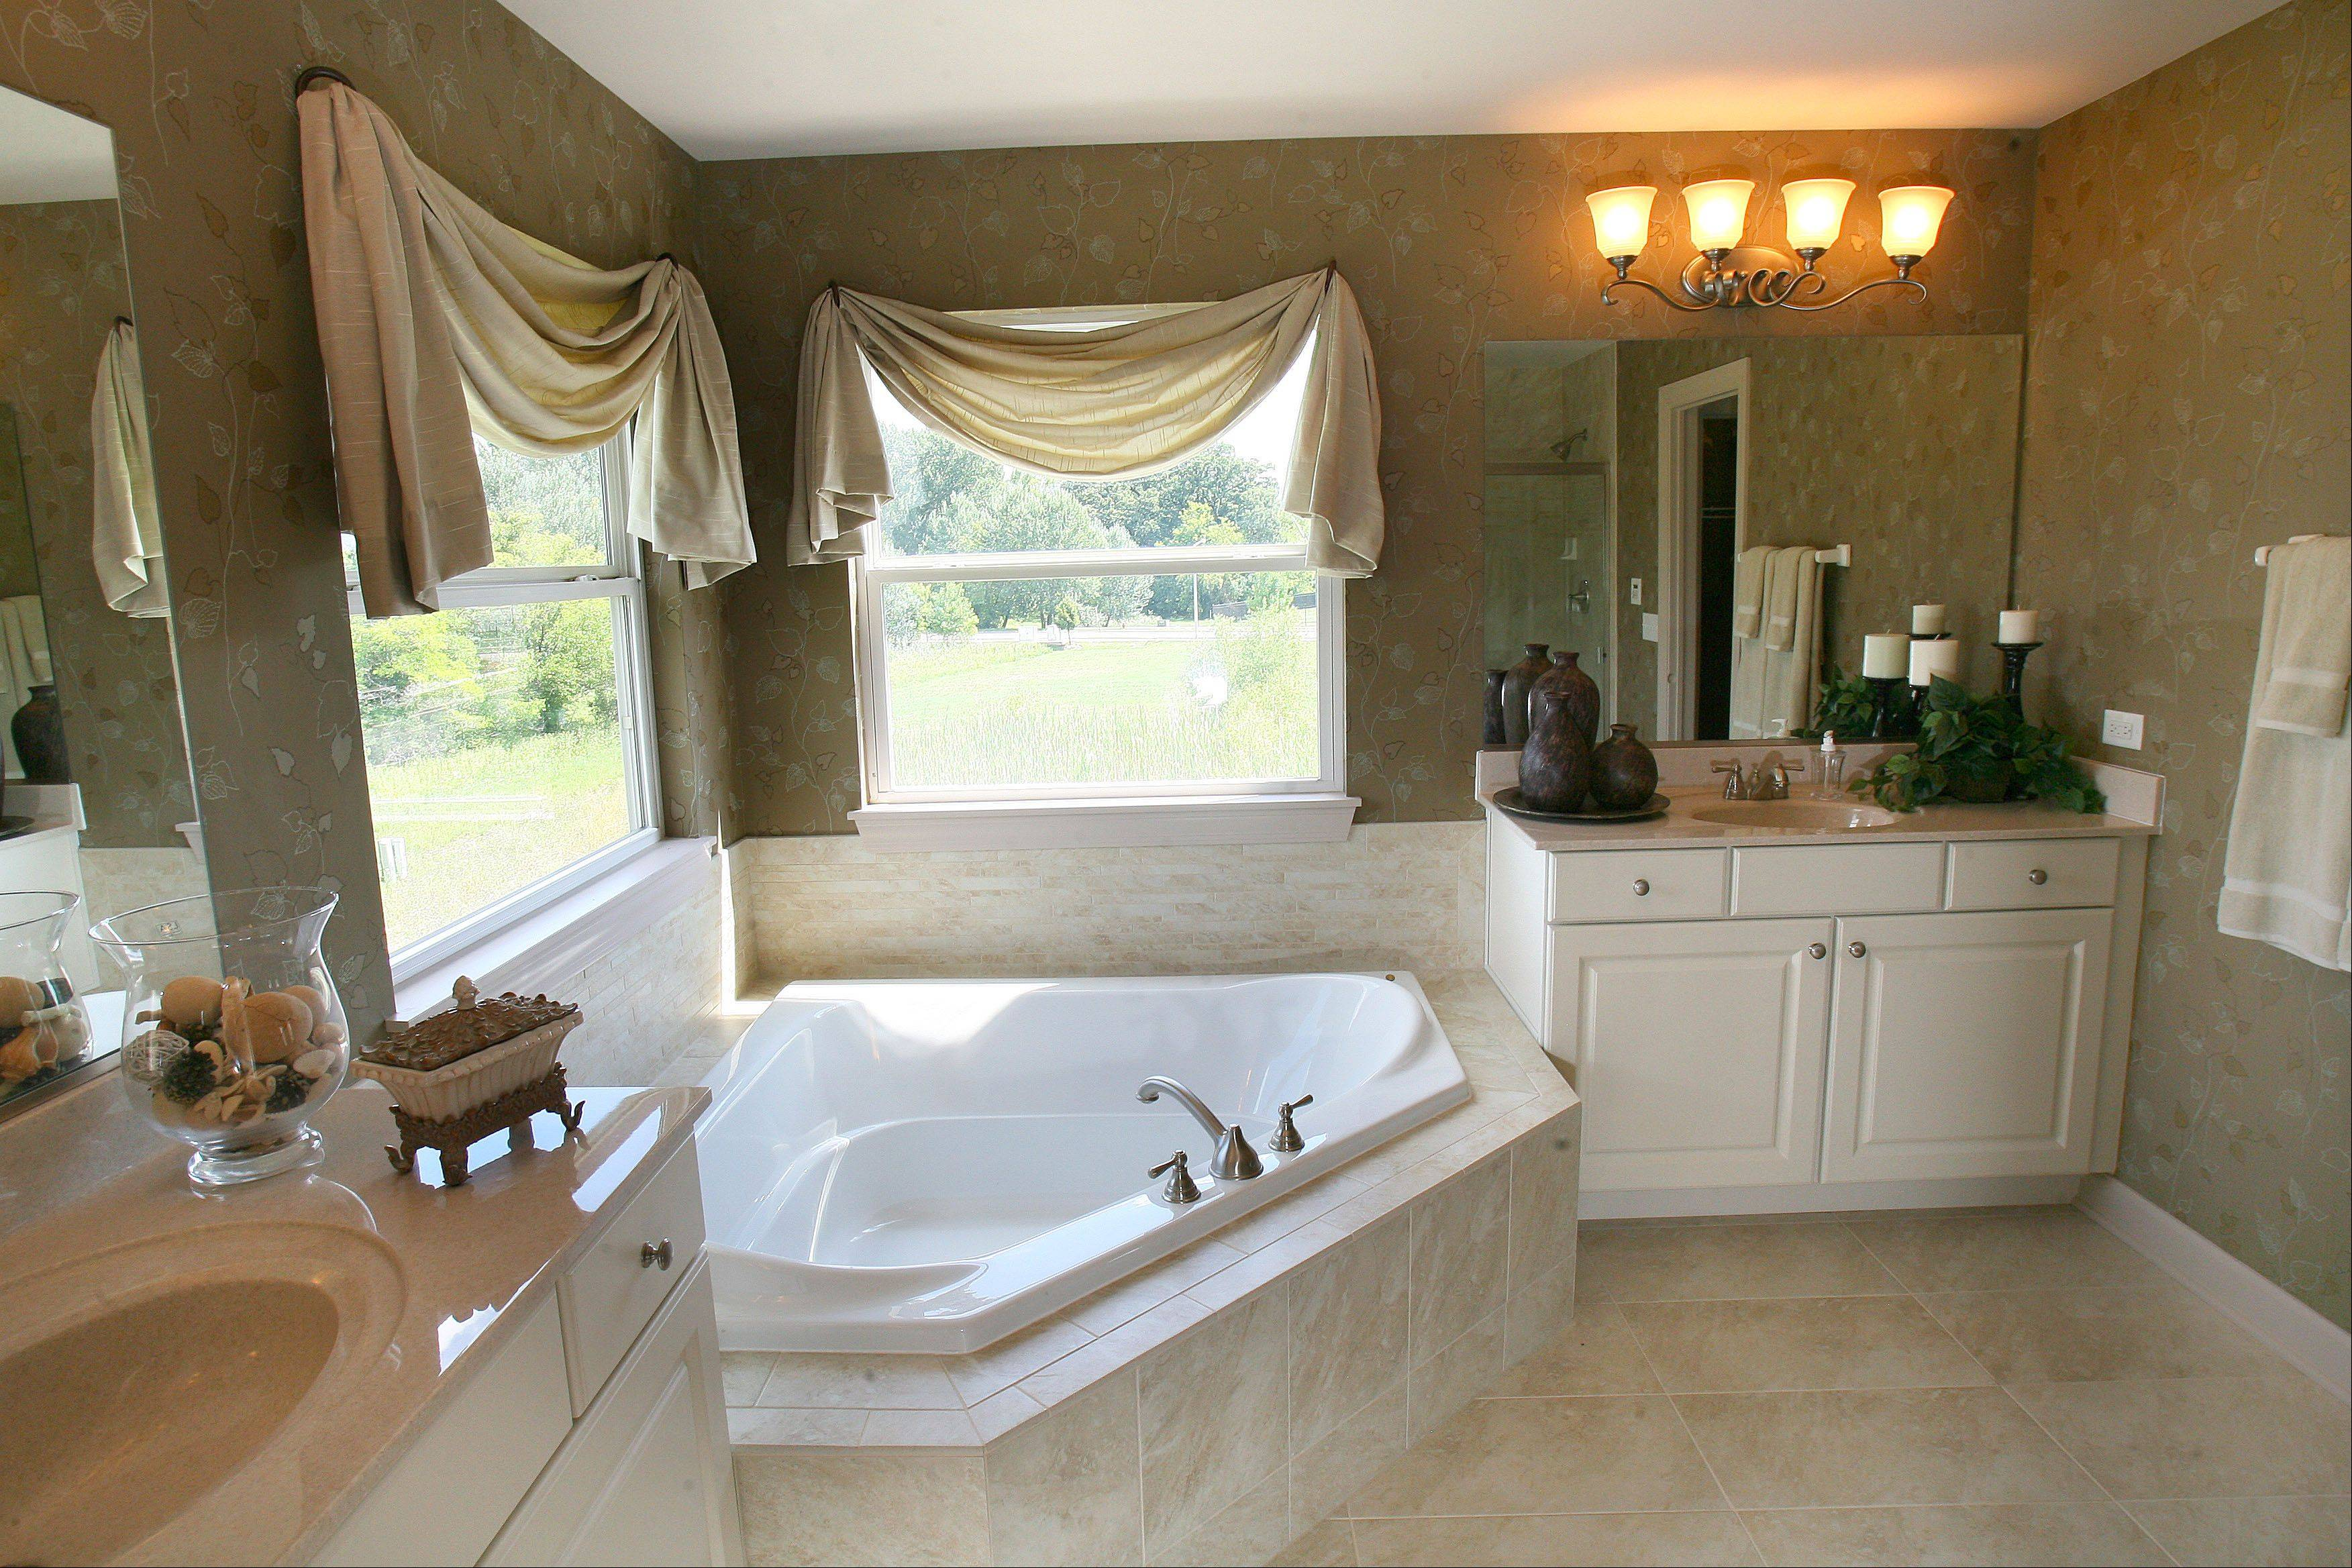 To get away from it all, the master suite provides a soothing setting and private bath.